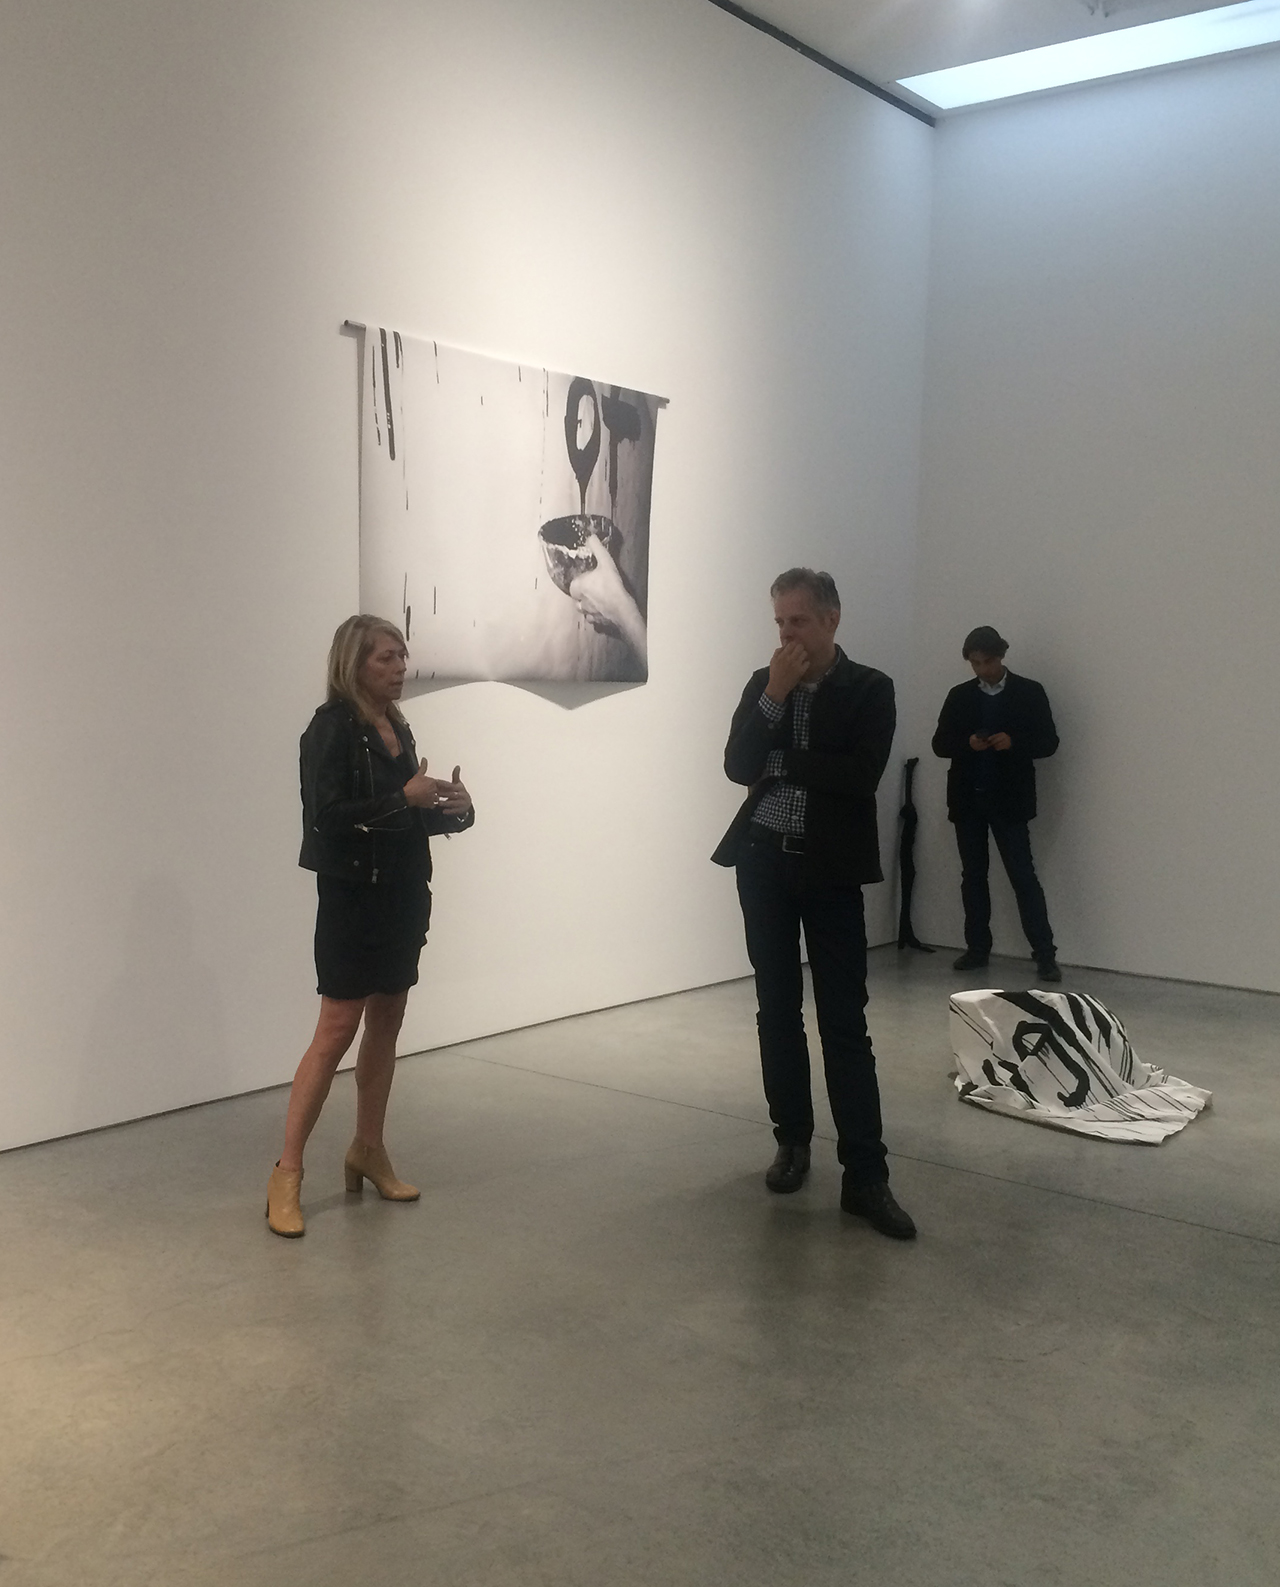 Kim Gordon discussing her work at the exhibition opening, June 4, 2015 (photo by Zack Sigel)